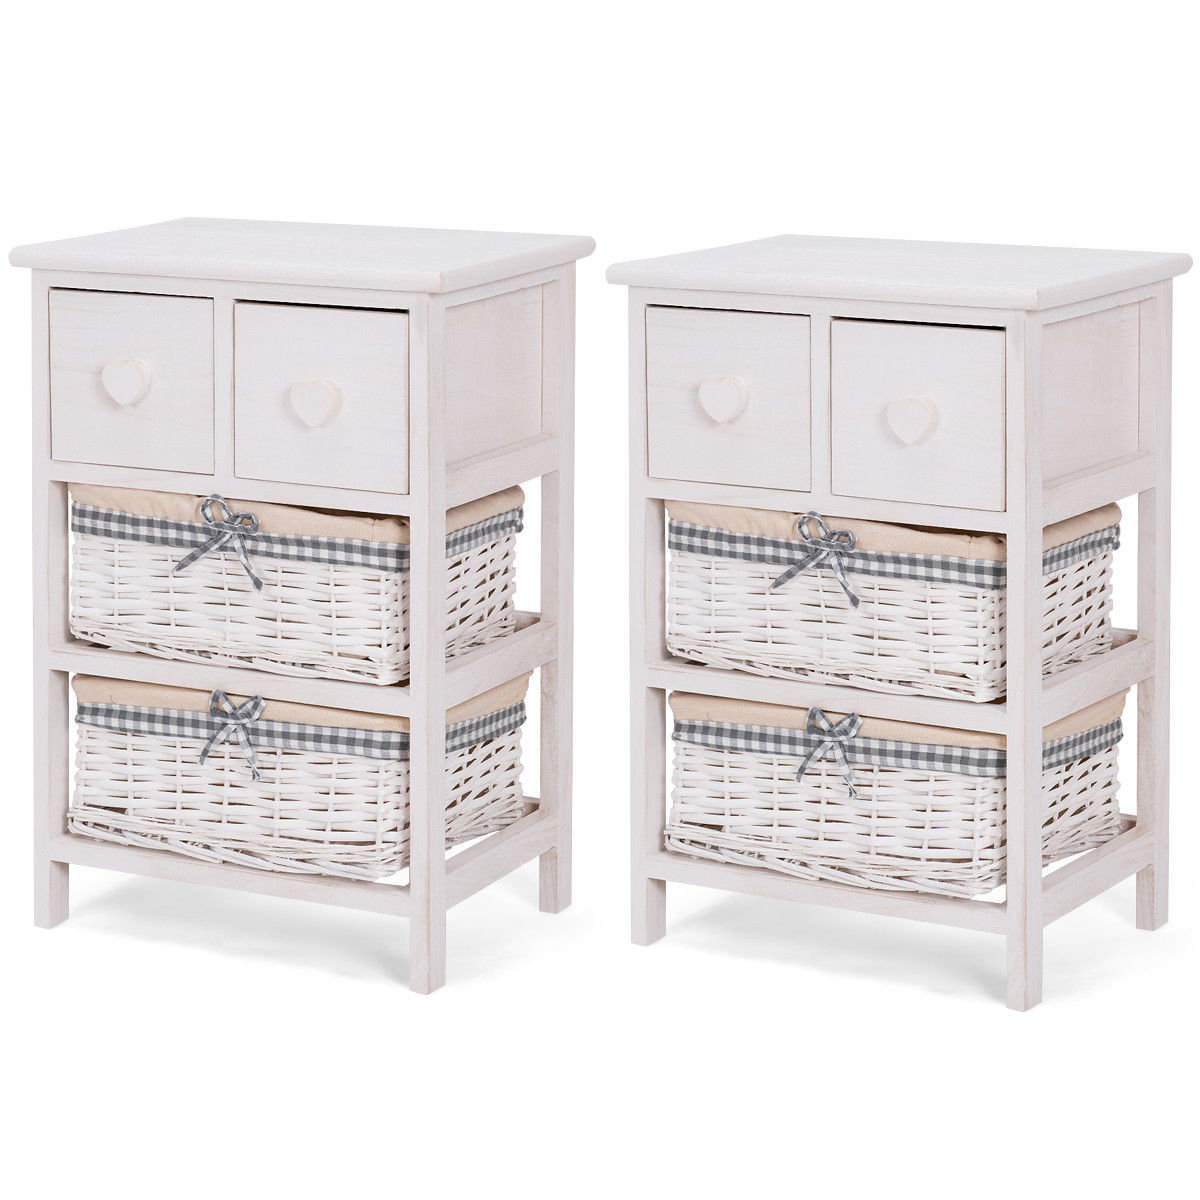 Giantex 2 PCS Nightstand Bedside End Table Bedroom Organizer with 2 Wicker Baskets Cabinet Home Furniture 2*HW57053 bedroom home furniture dresser table with 2 drawers mirror and stool neoclassical style kd packaged wooden carved materials